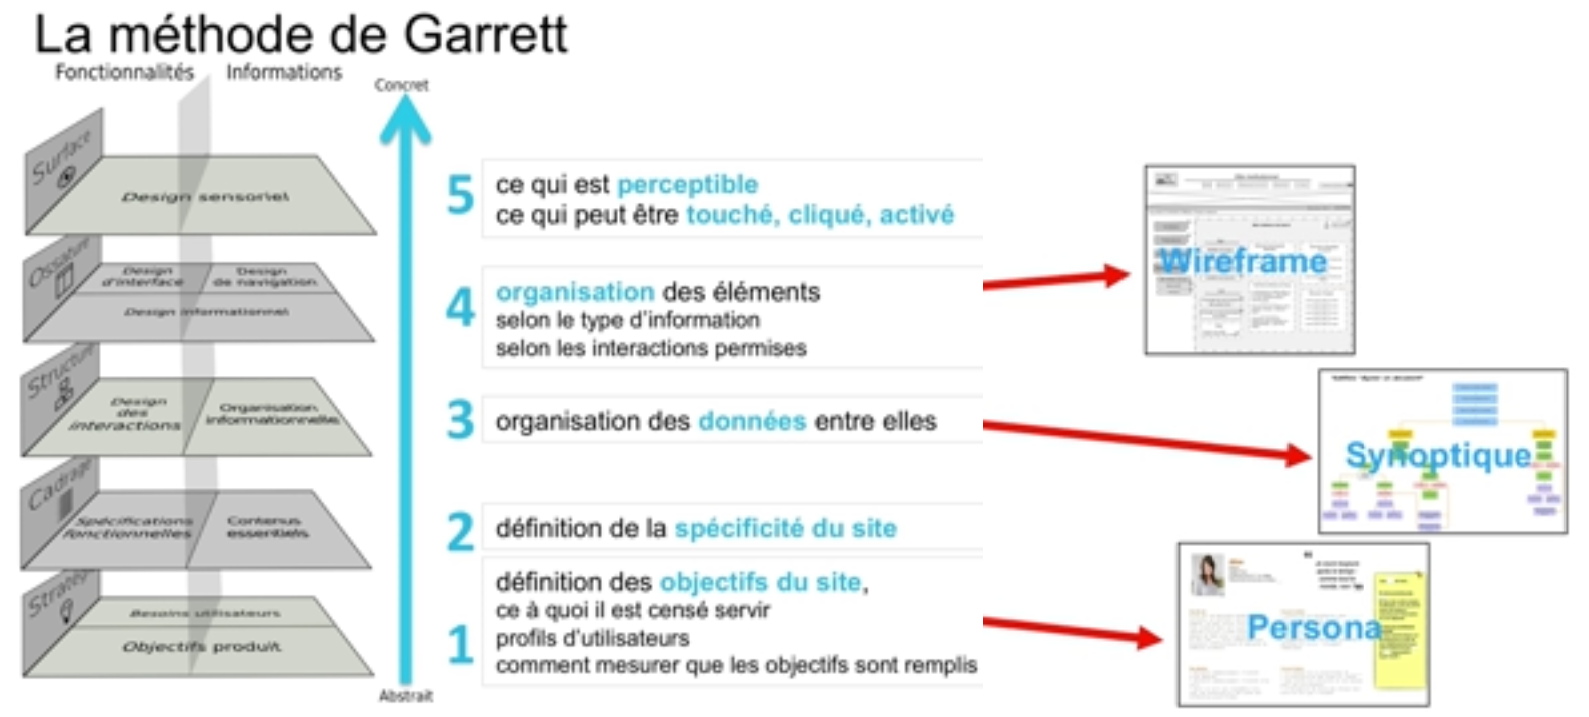 Références en architecture de l'information - Methode Garret